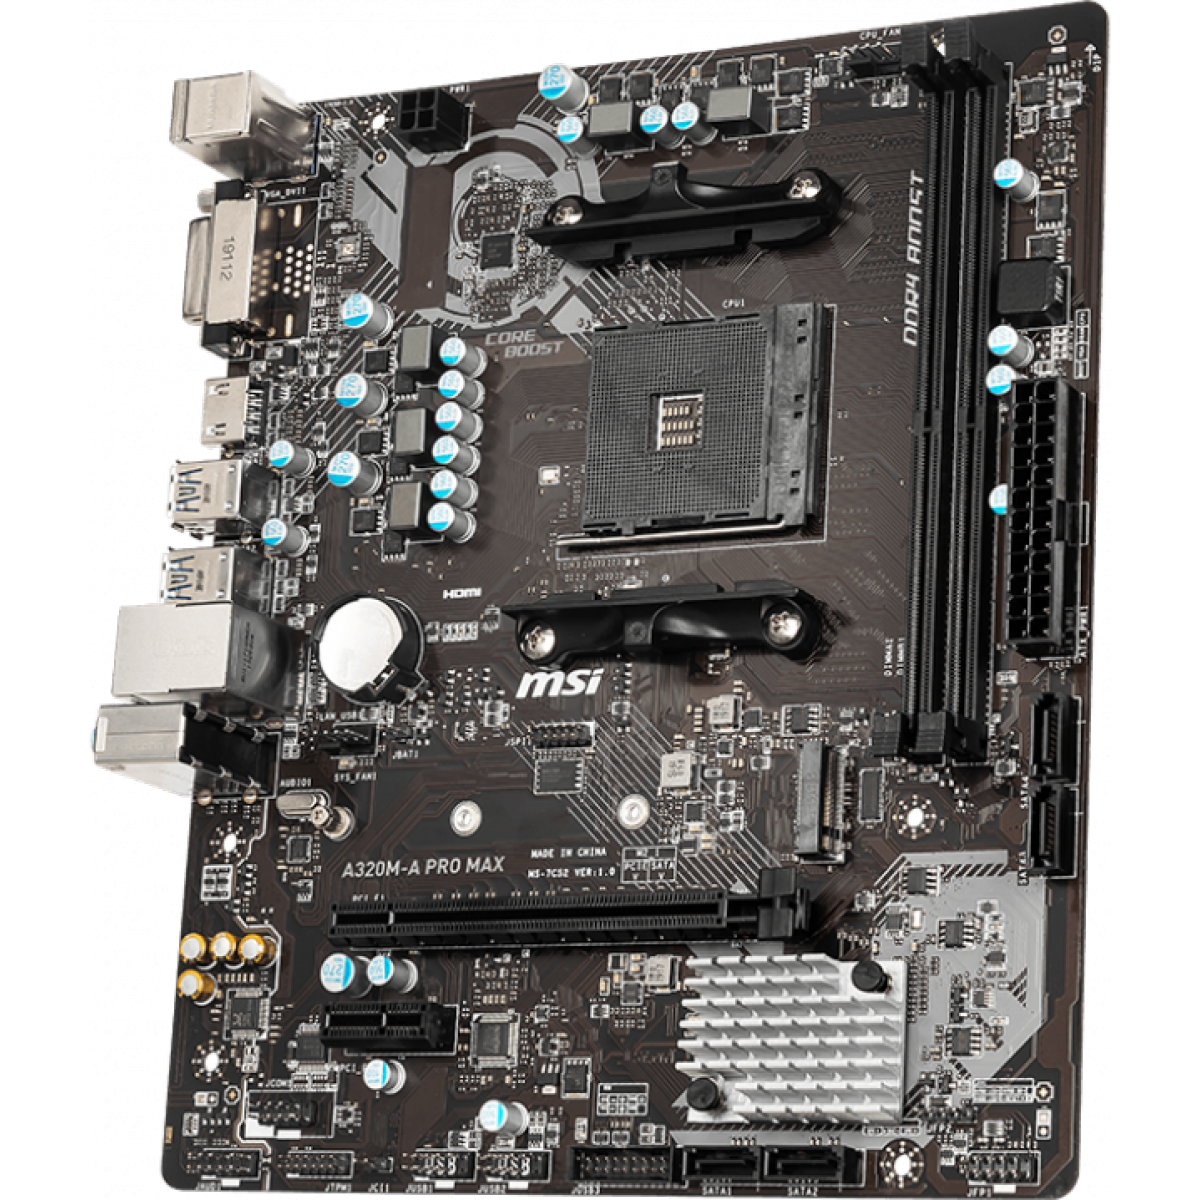 Placa Mãe MSI A320M-A Pro Max, Chipset A320, AMD AM4, mATX, DDR4 - Open Box